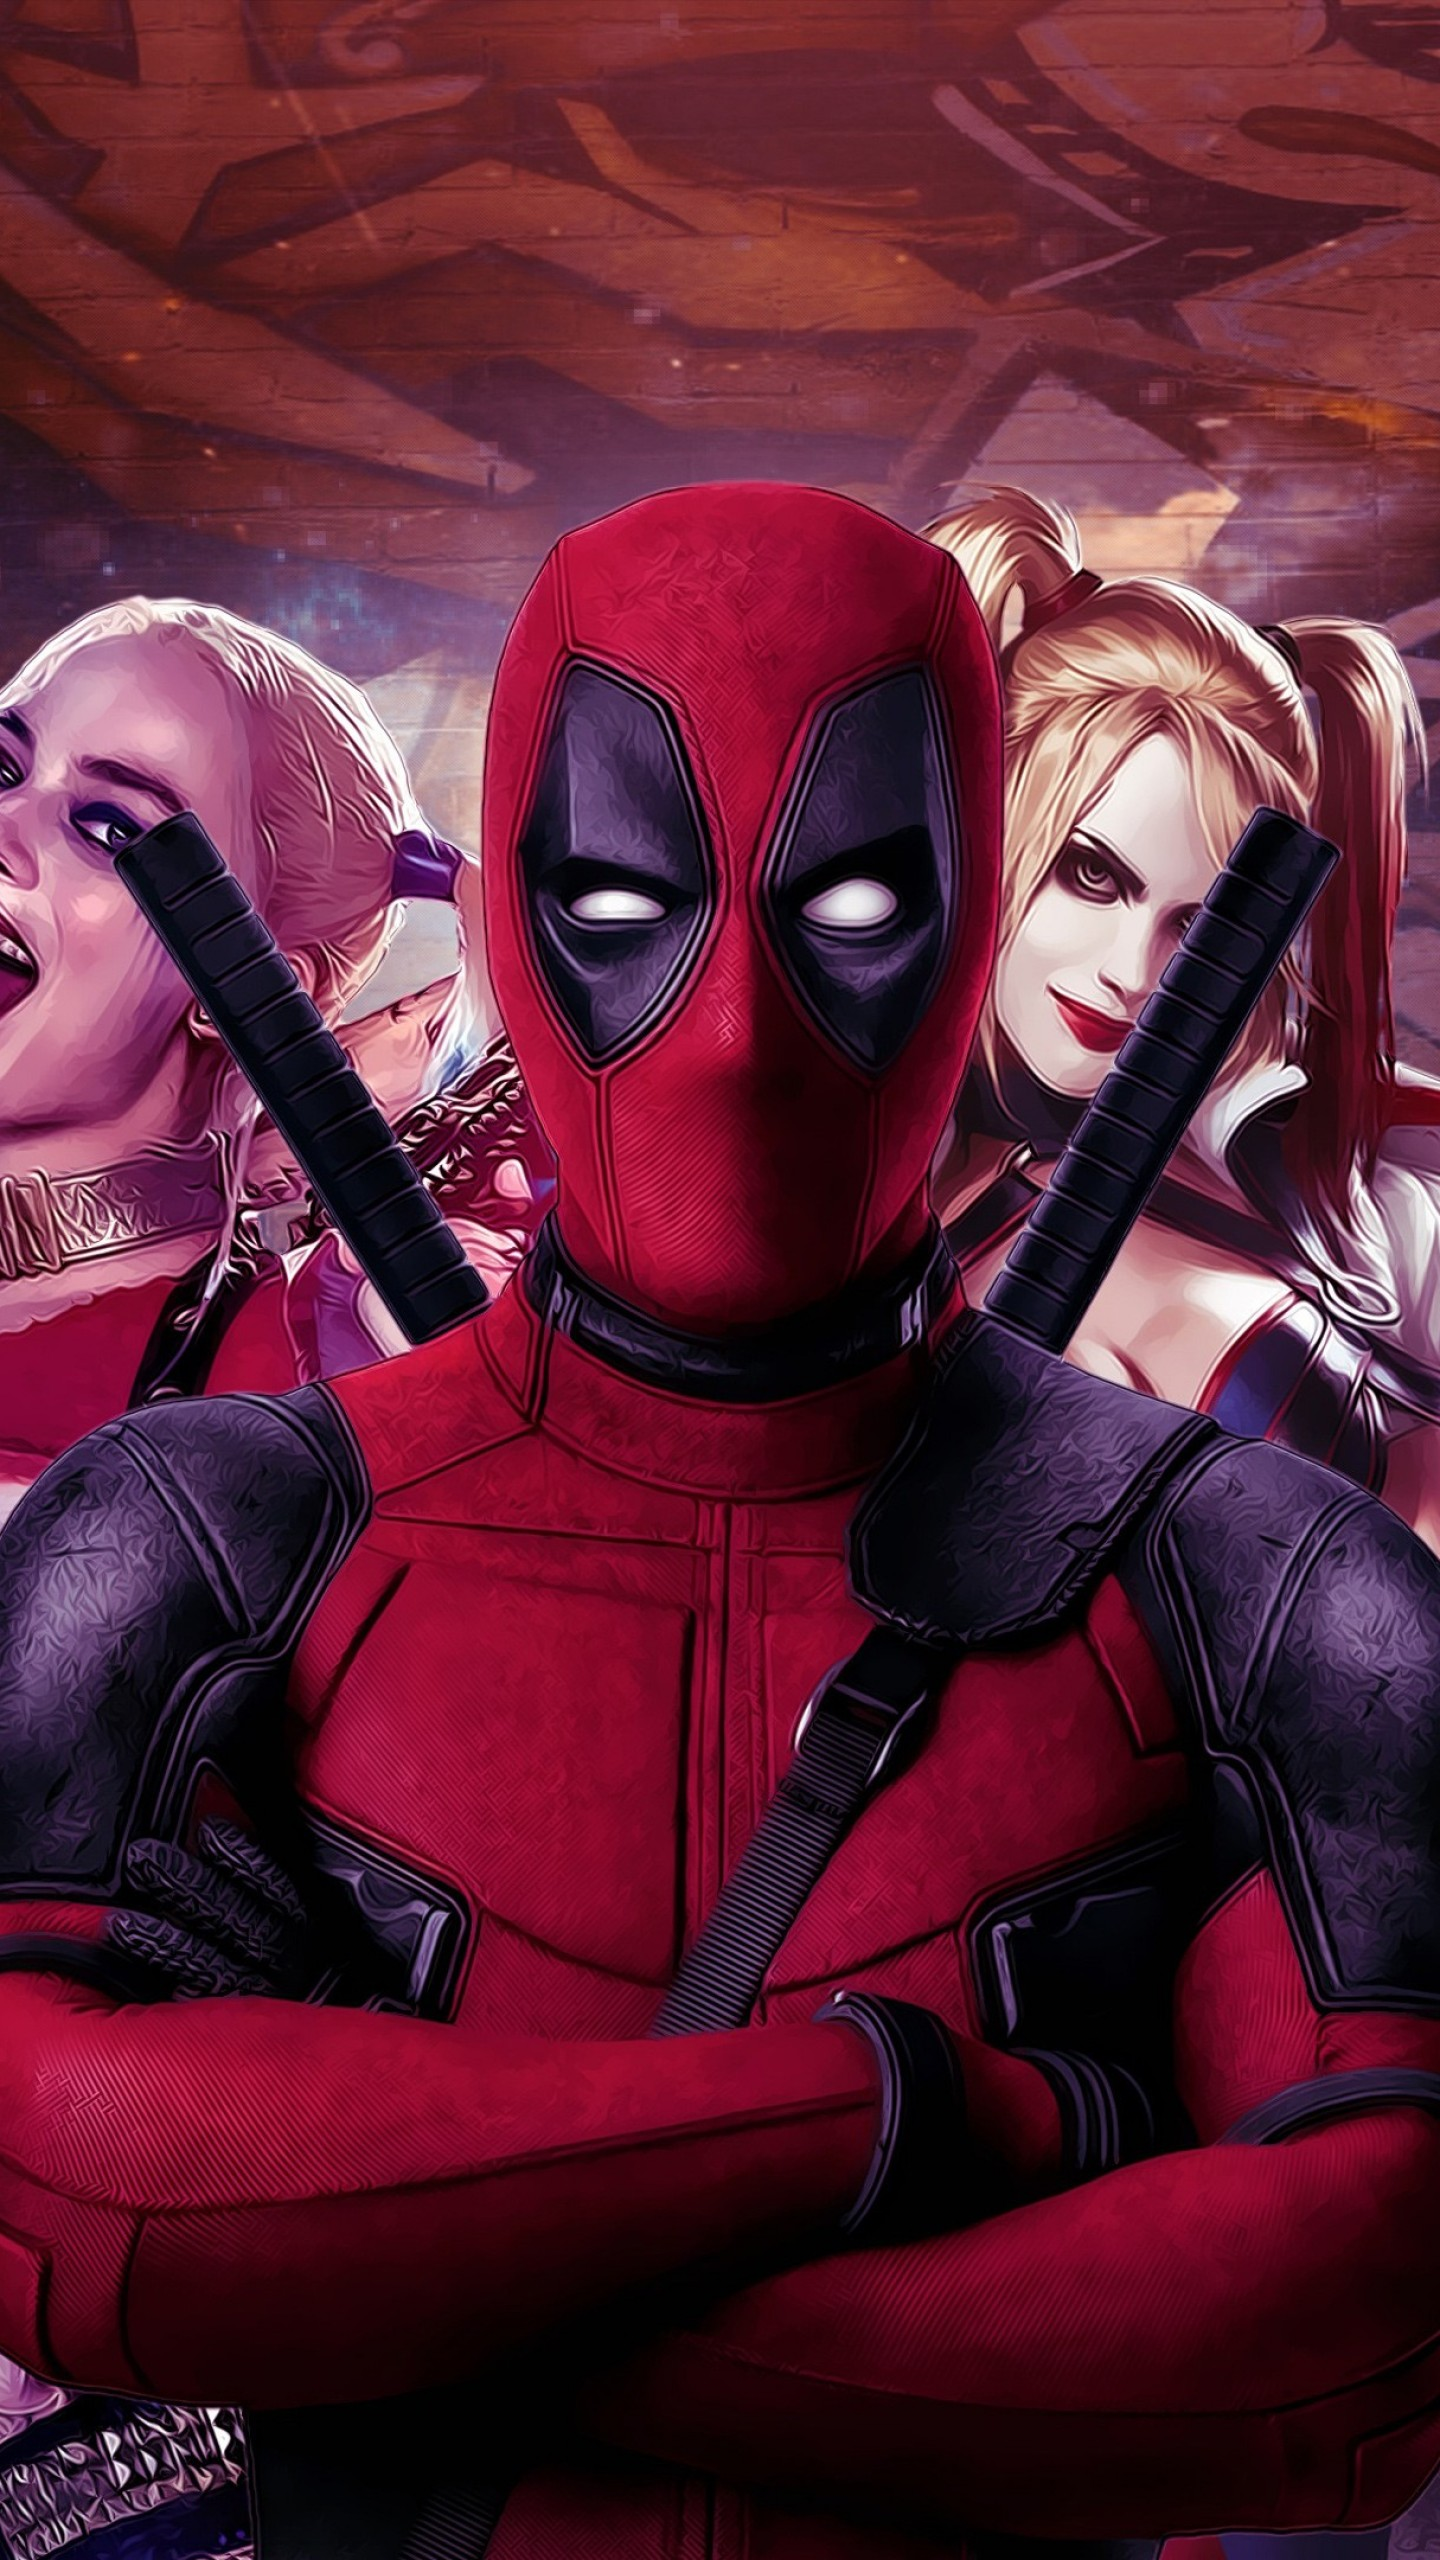 Wallpaper Deadpool Harley Quinn Suicide Squad Art Margot